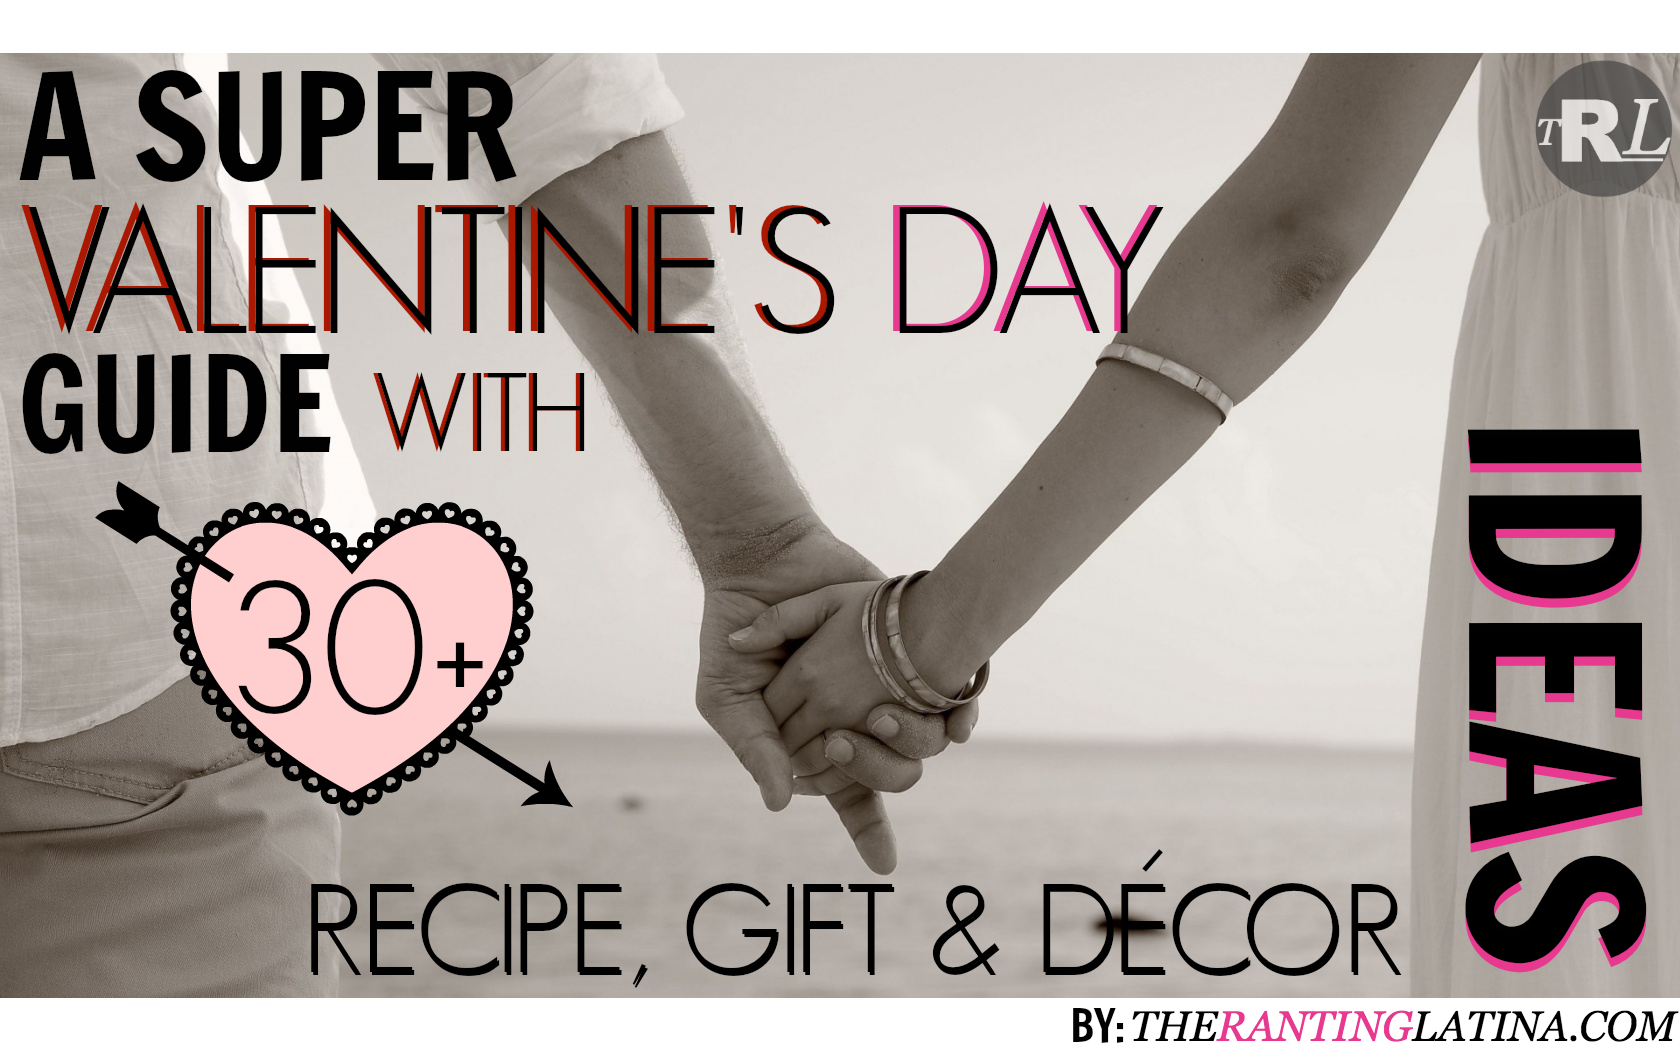 A Super Valentine's Day Recipe, Gift & Décor Guide